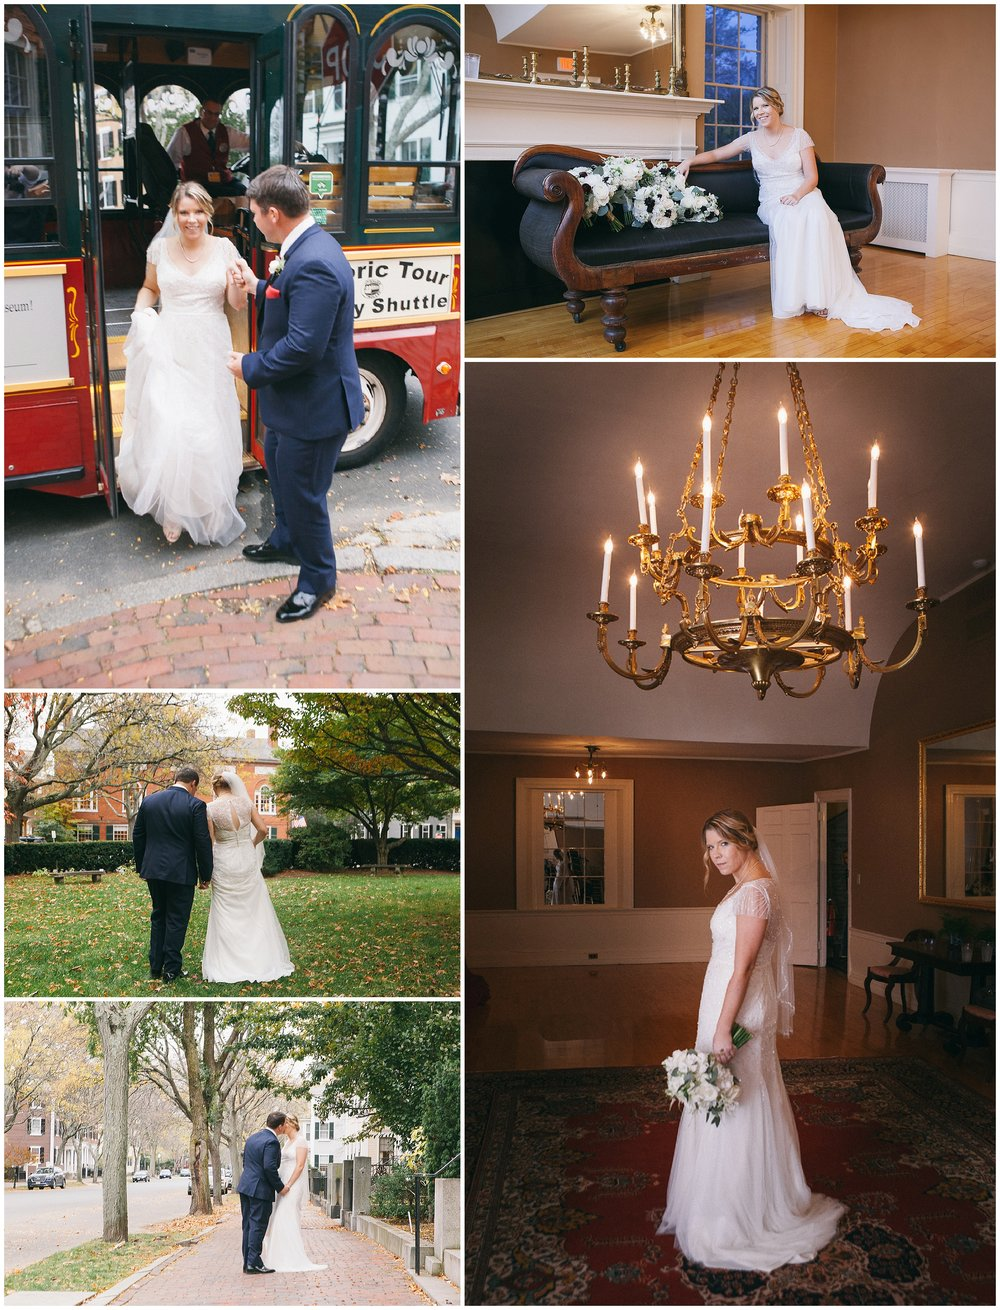 Stepping out of the trolley and into adventure. Wedding portraits of bride and groom near Hamilton Hall in Salem Massachusetts - Wedding Photography by Ryan Richardson Photography.